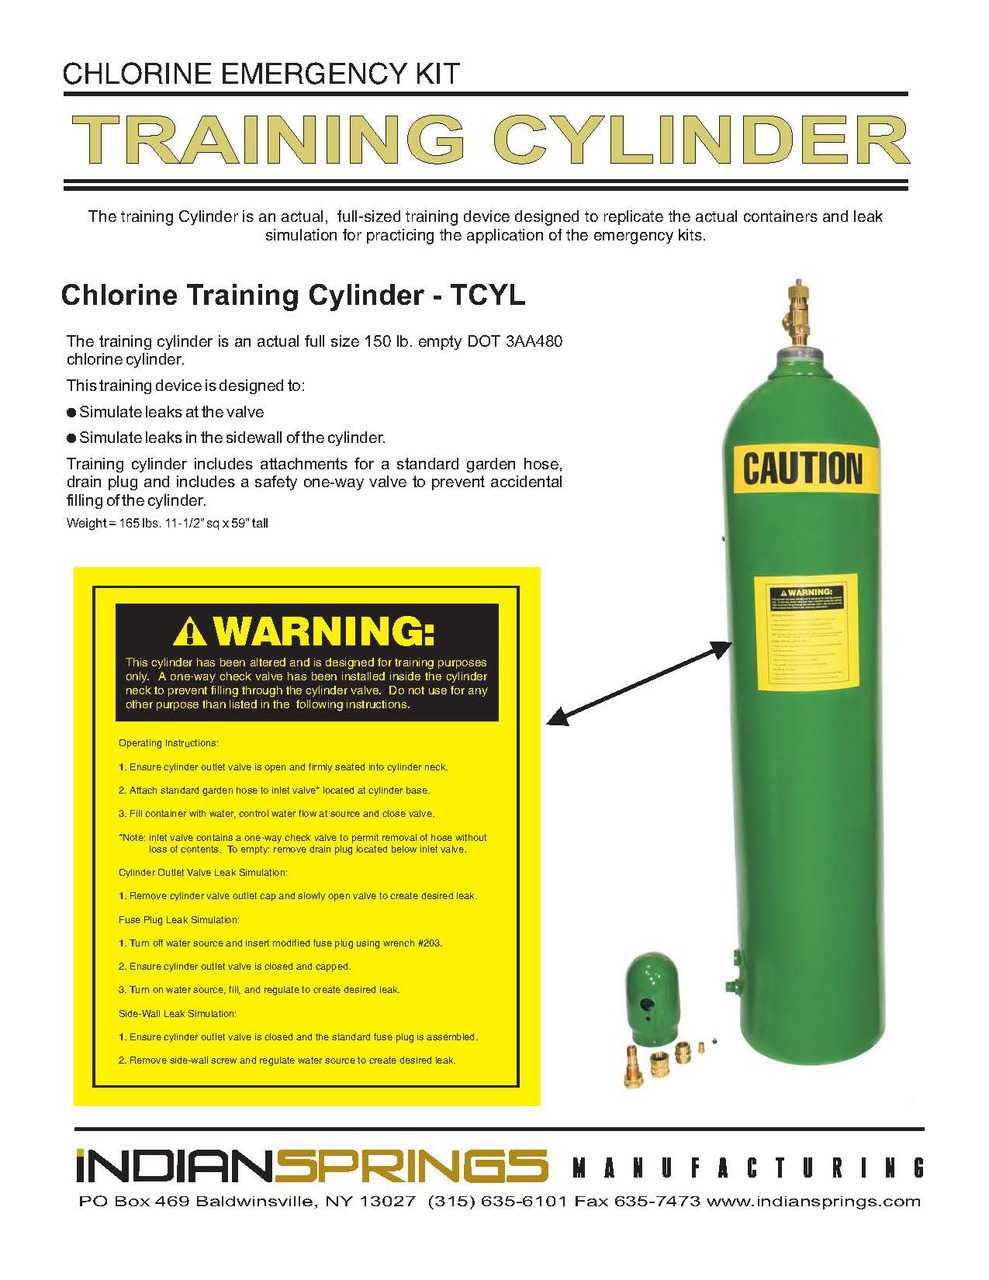 Chlorine Training Cylinder Instructions | Indian Springs